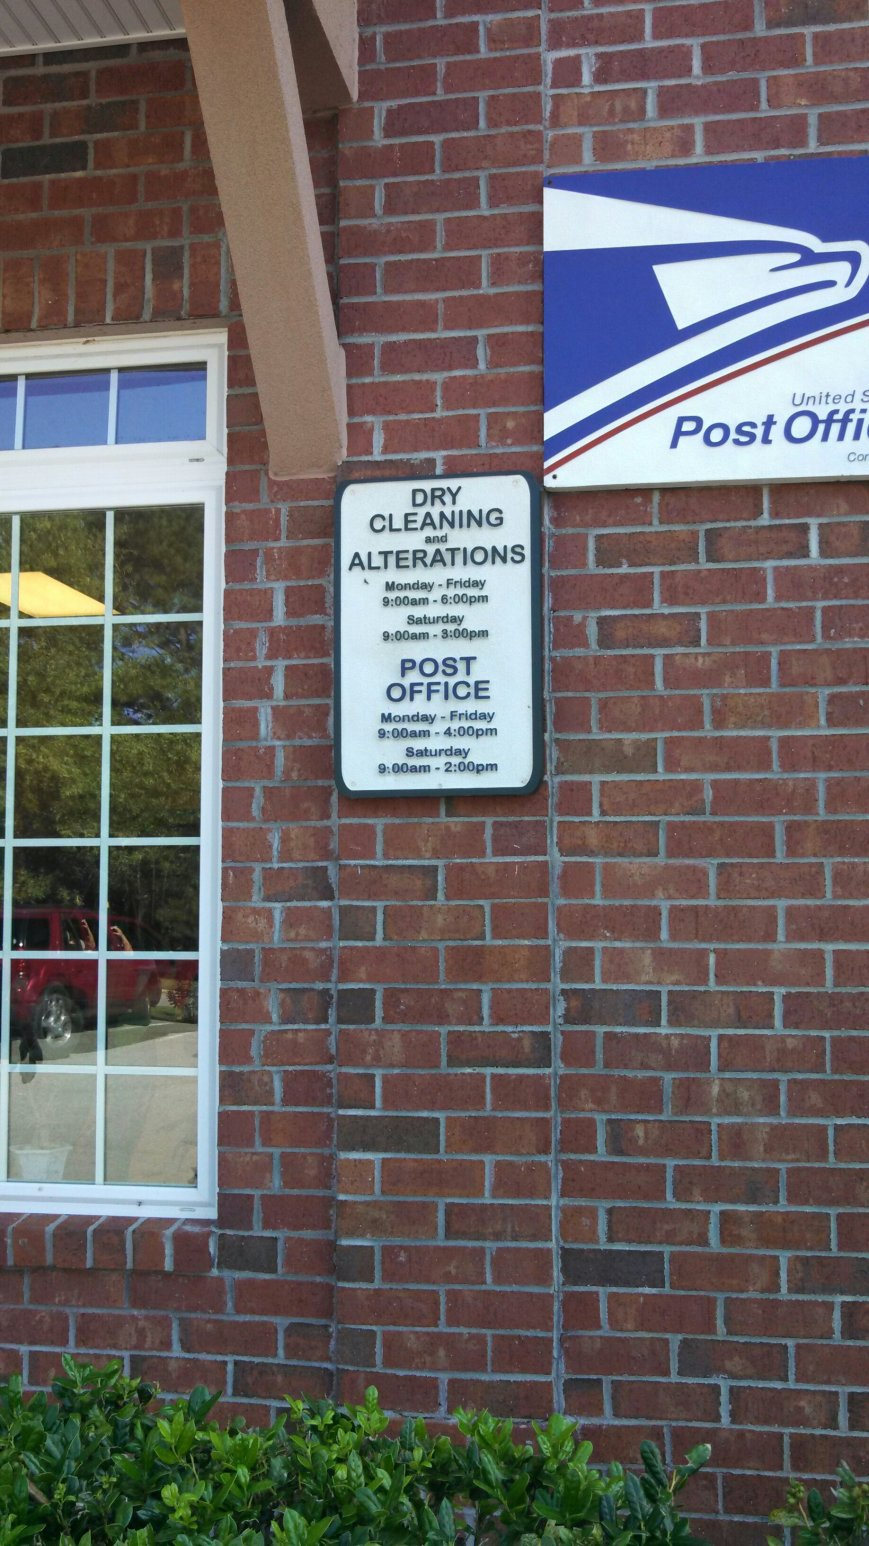 Postoffice and dry cleaner